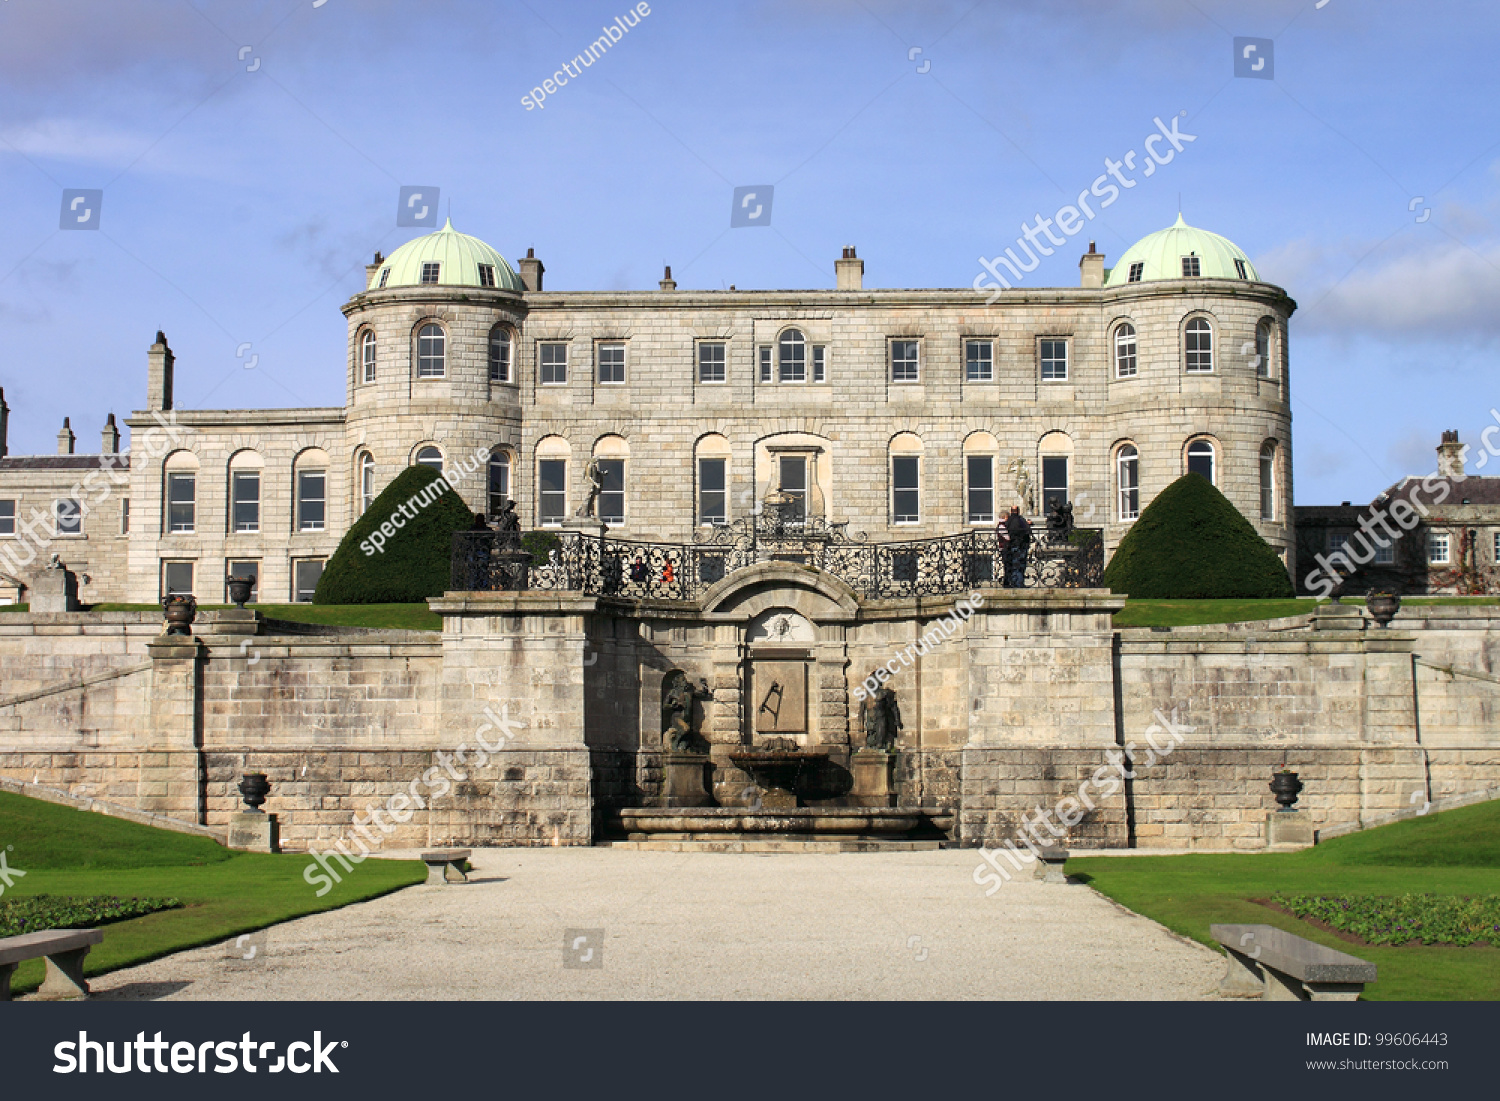 Powerscourt house one most beautiful country stock photo for Beautiful homes and great estates pictures